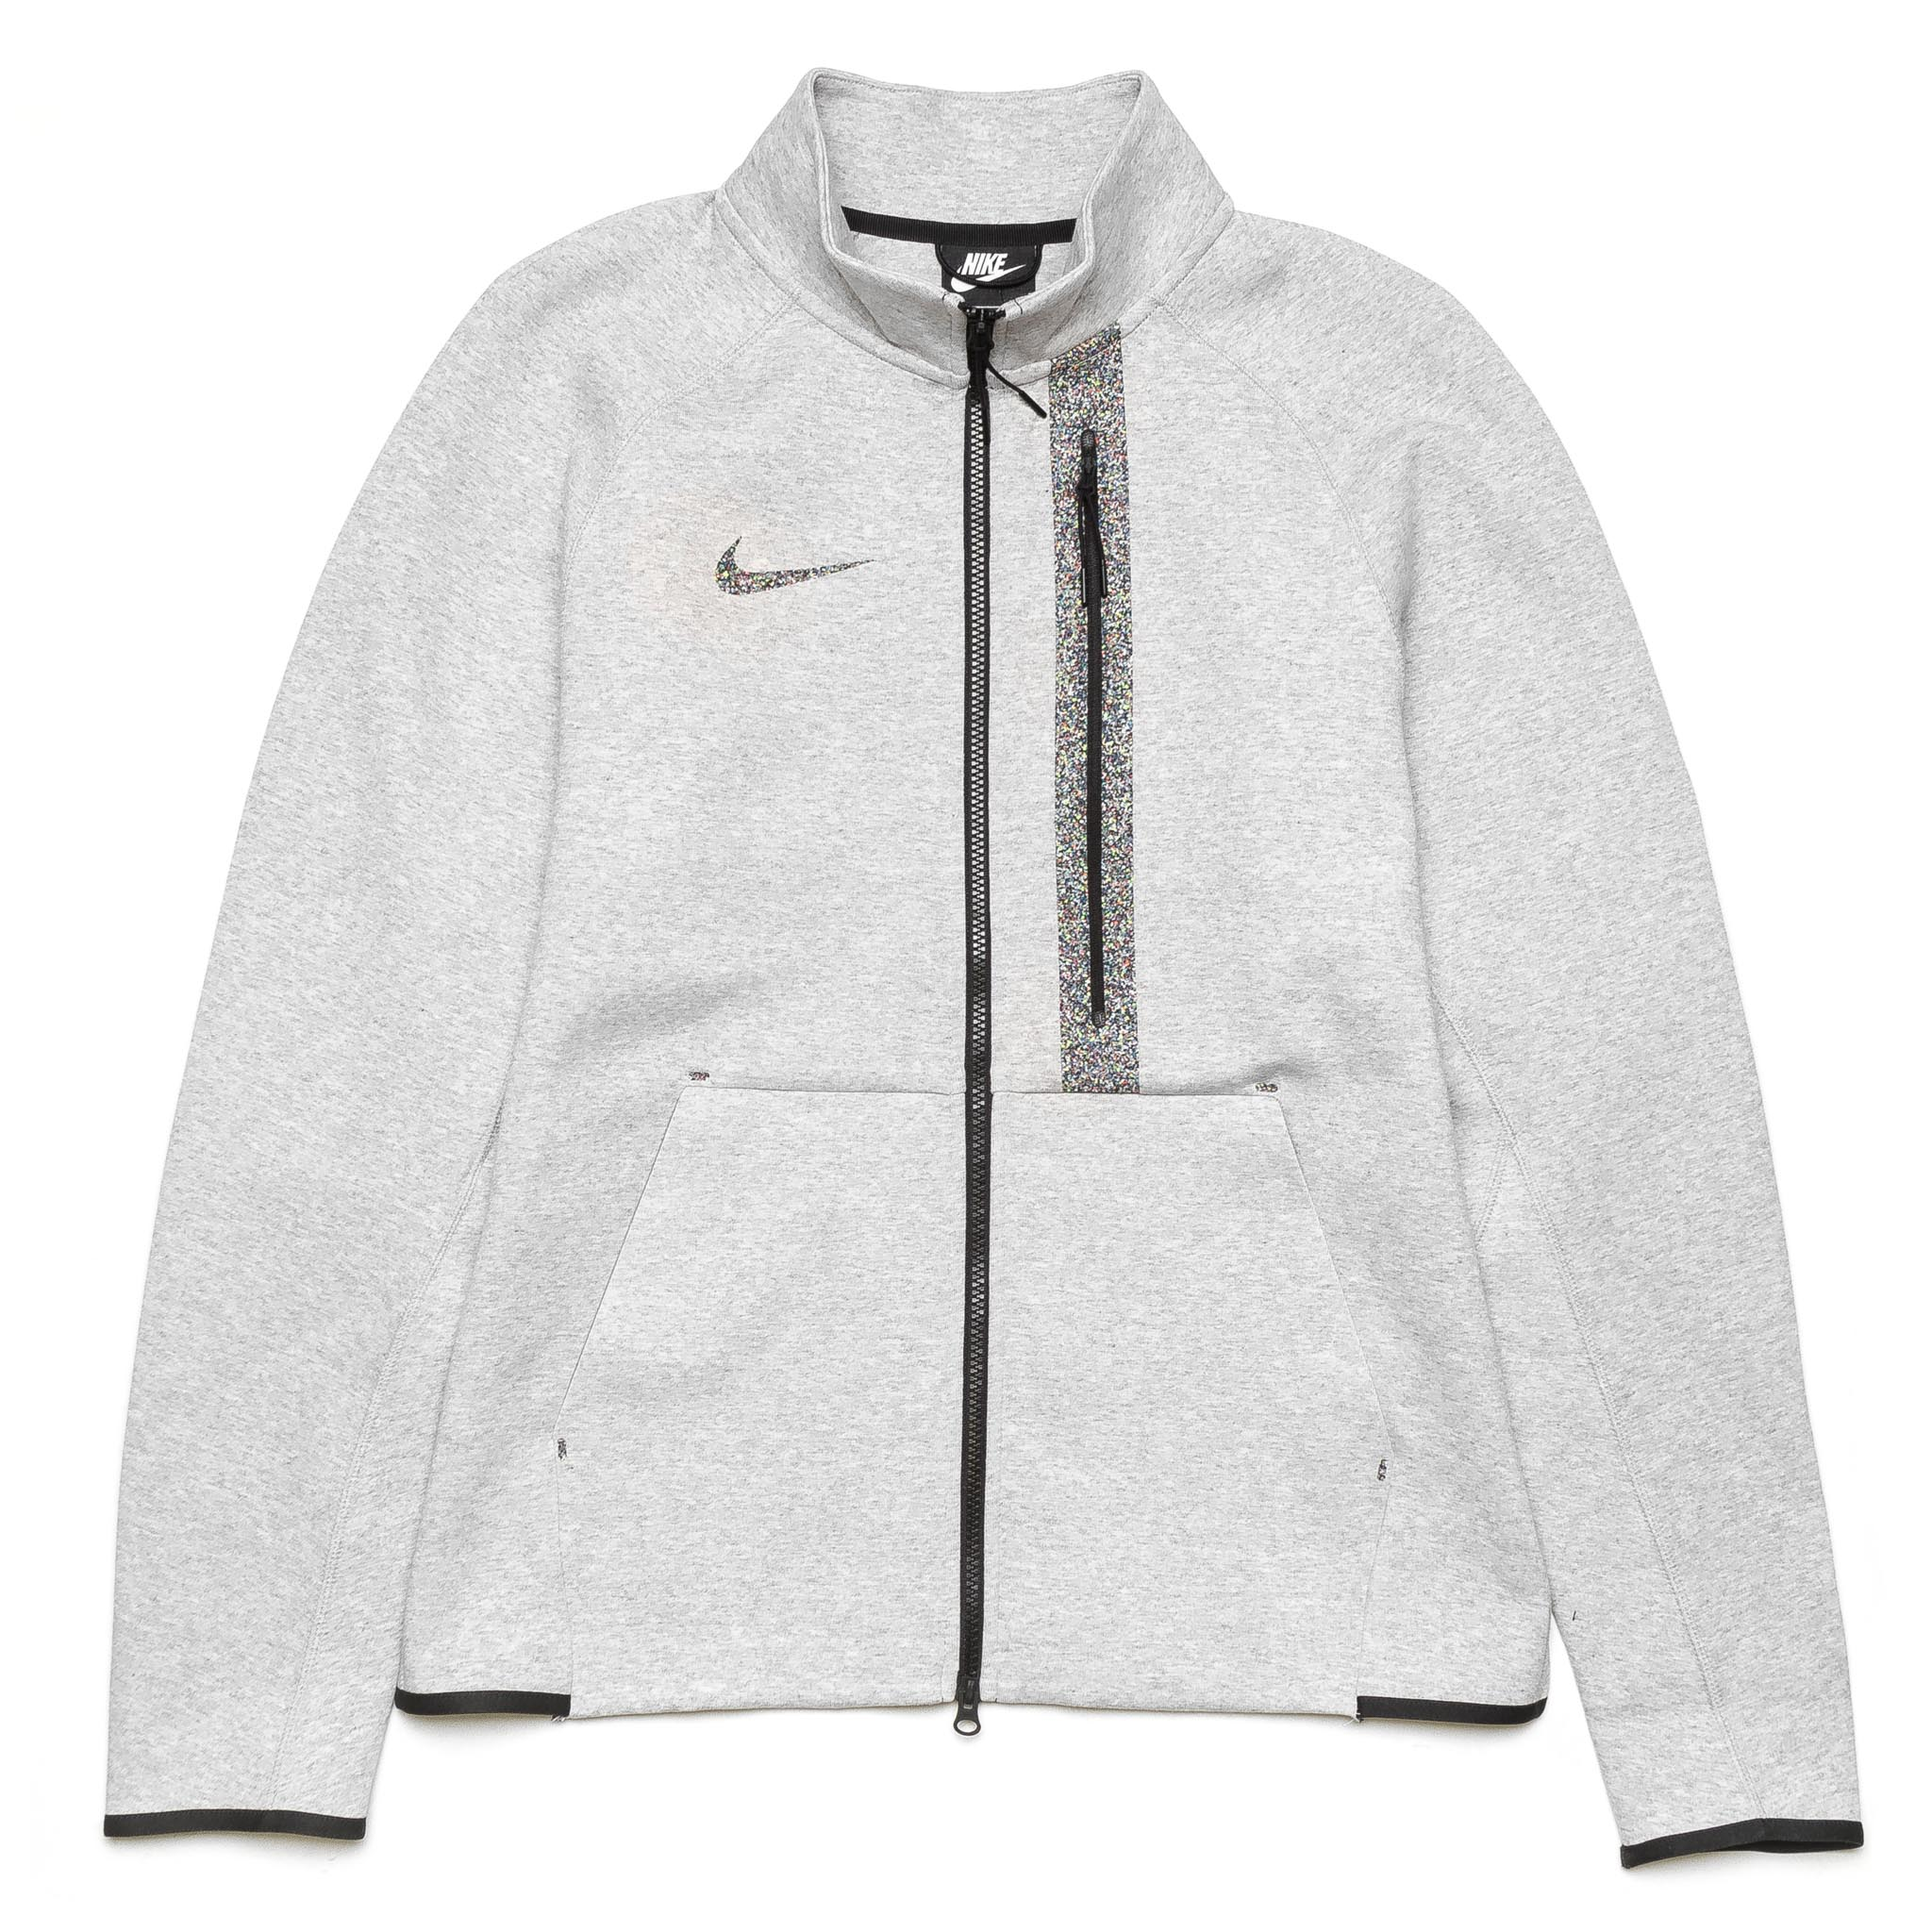 Nike 50 Jacket CJ4500-902 Grey